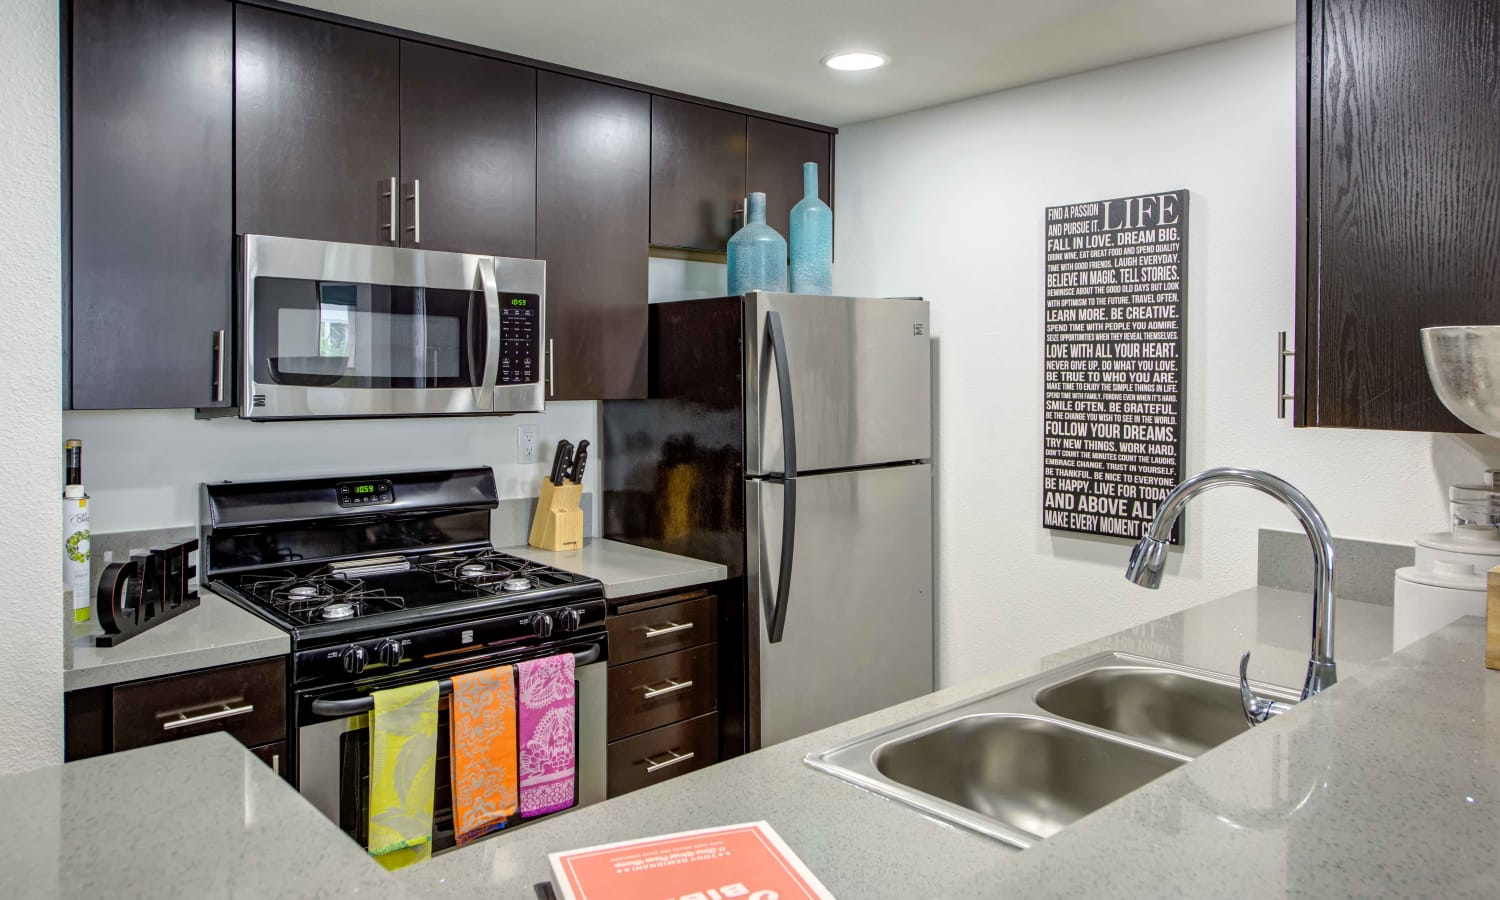 Sofi at 3rd offers a modern kitchen in Long Beach, California